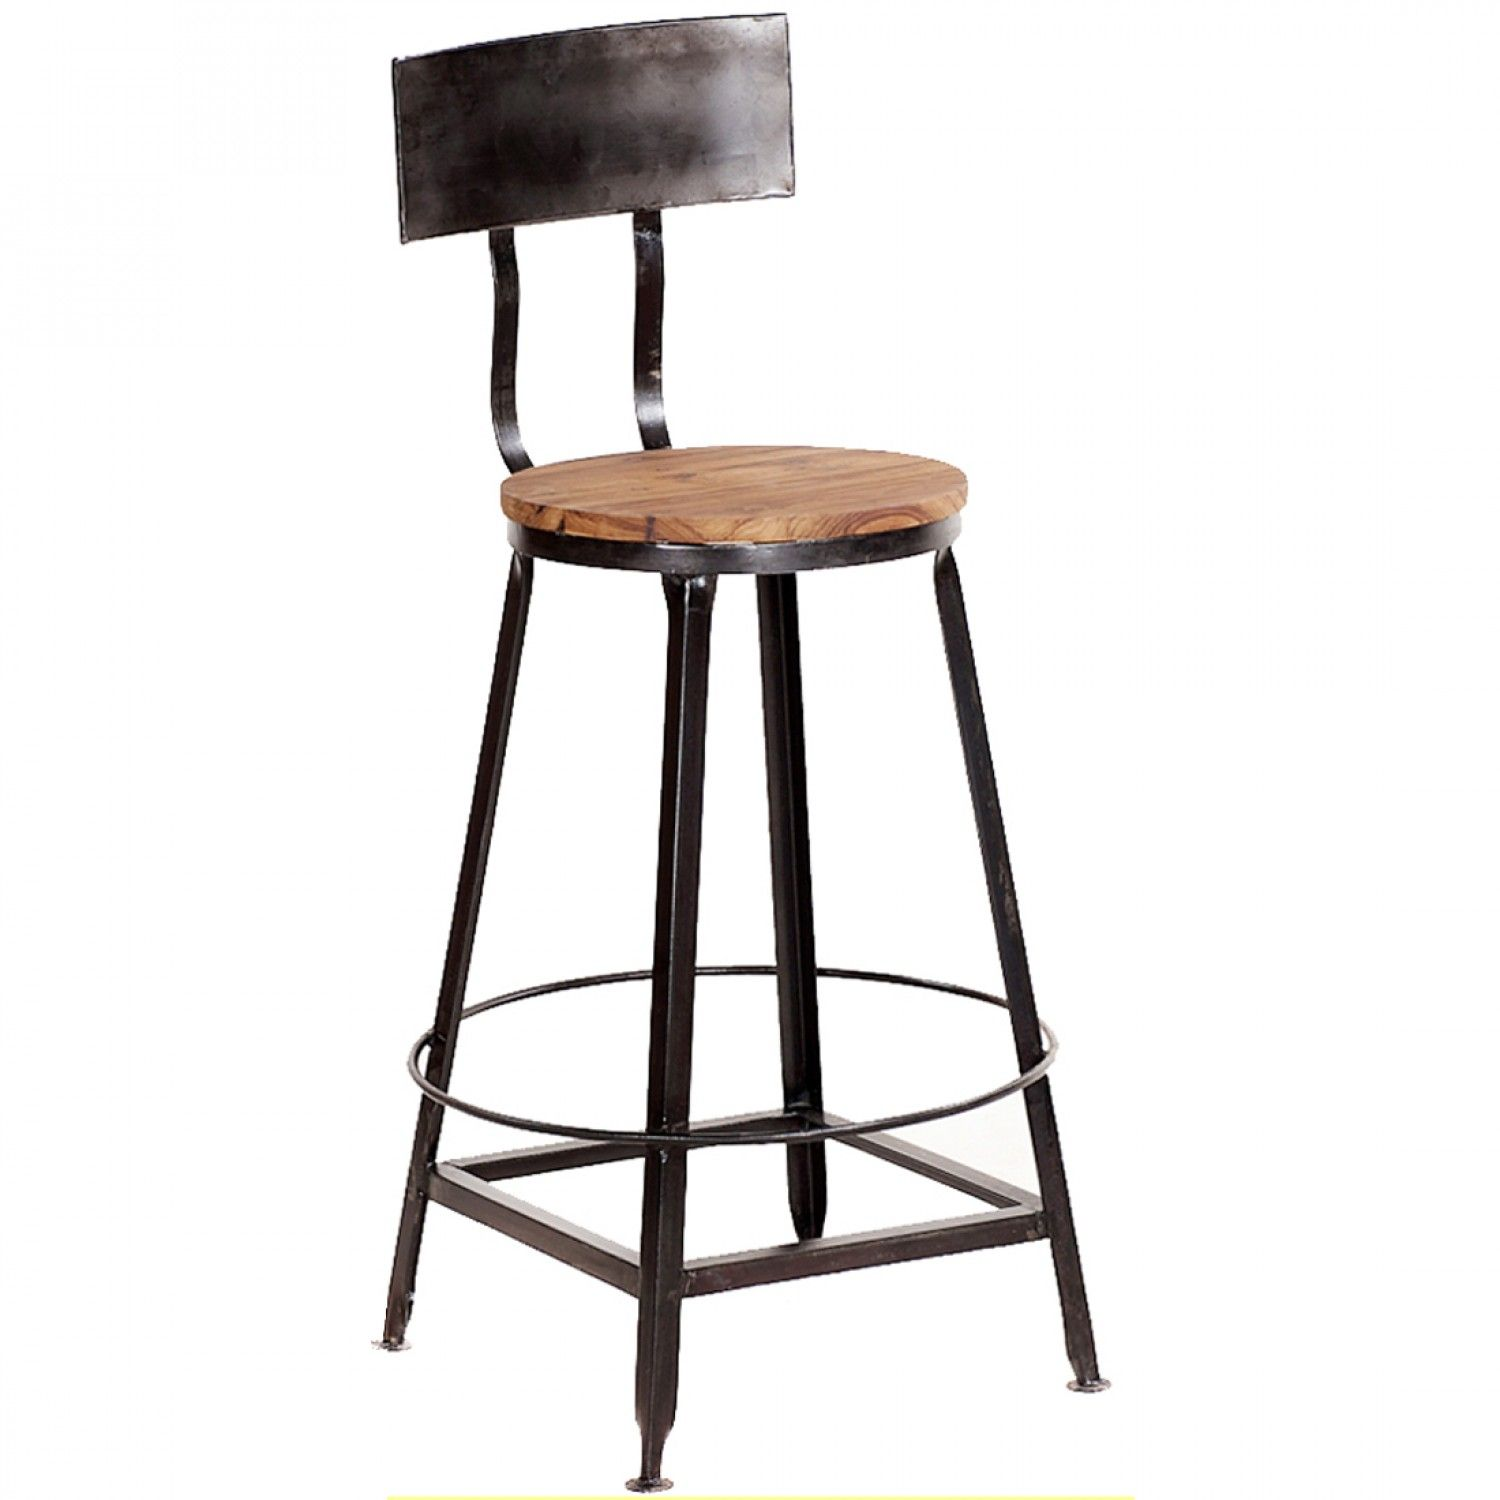 Solid Metal Bar Stool With High Back. Metal Bar Stool With Back And Foamy Seat. Metal Bar Stool With Cross Back. Swivel Metal Bar Stool With Unique Back And ...  sc 1 st  Pinterest & Depiction of Vintage Metal Bar Stools That Will Inspire You in ... islam-shia.org